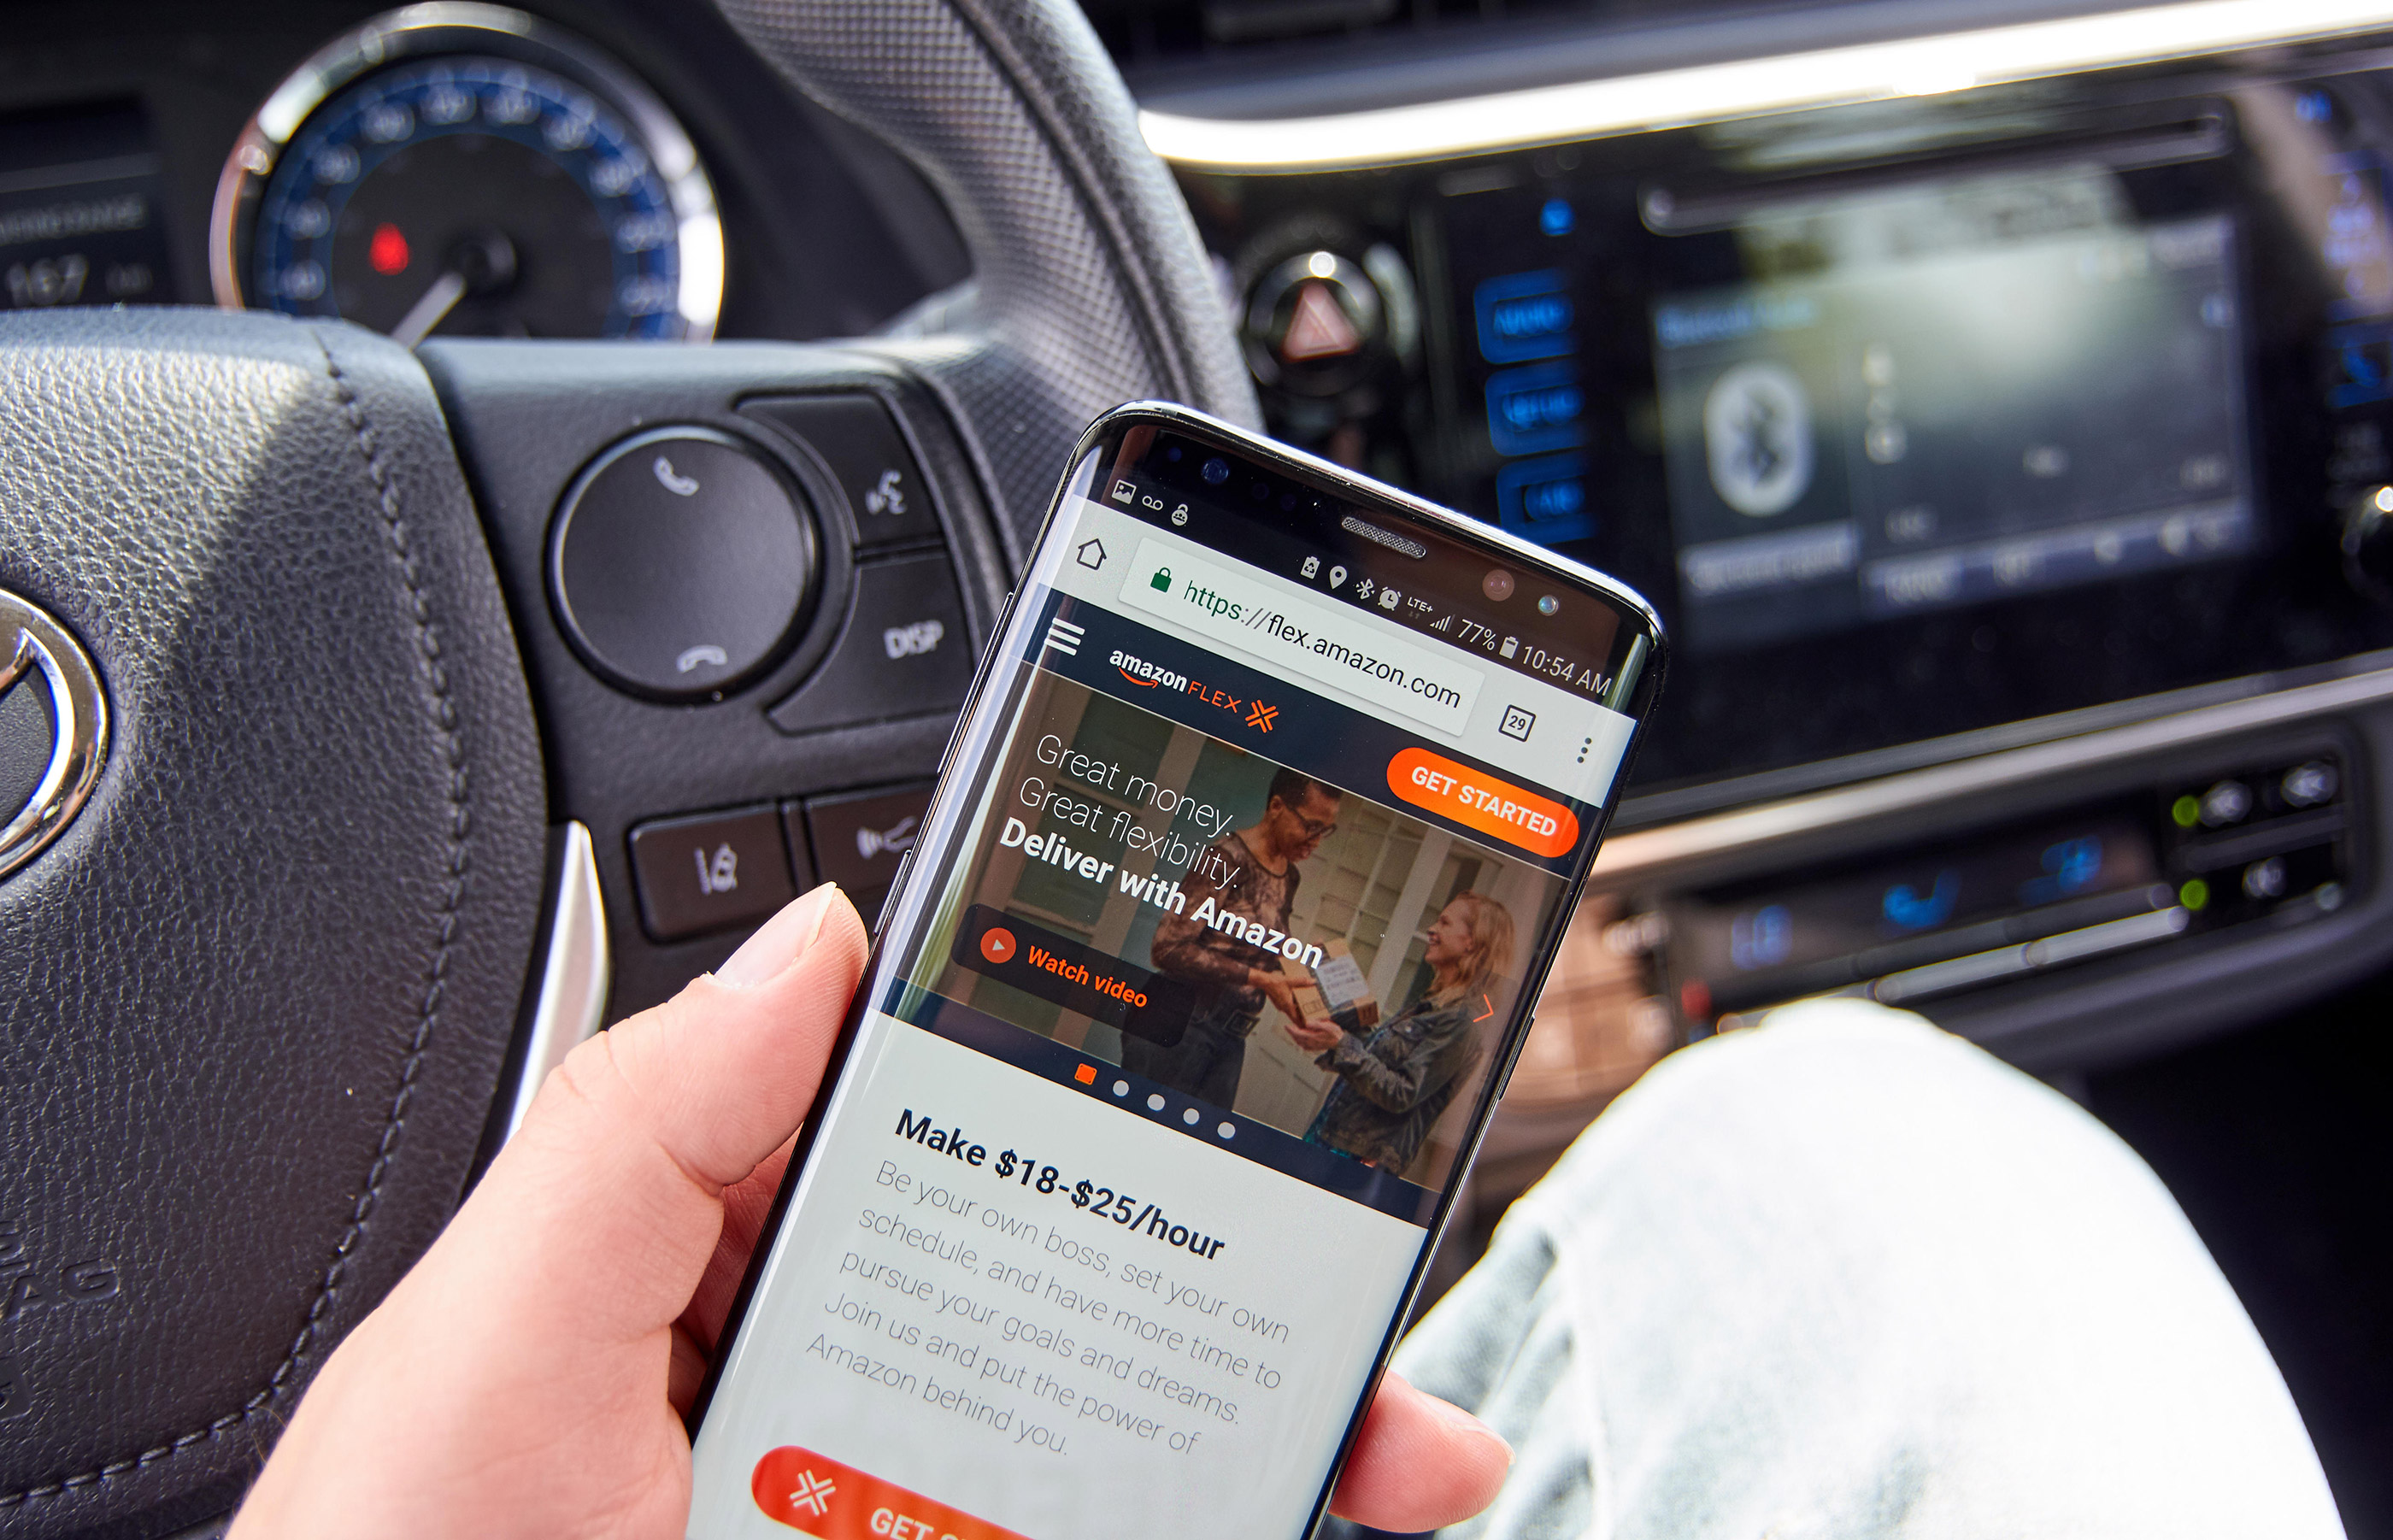 Amazon Flex - Deliver with Amazon on Samsung s8 screen